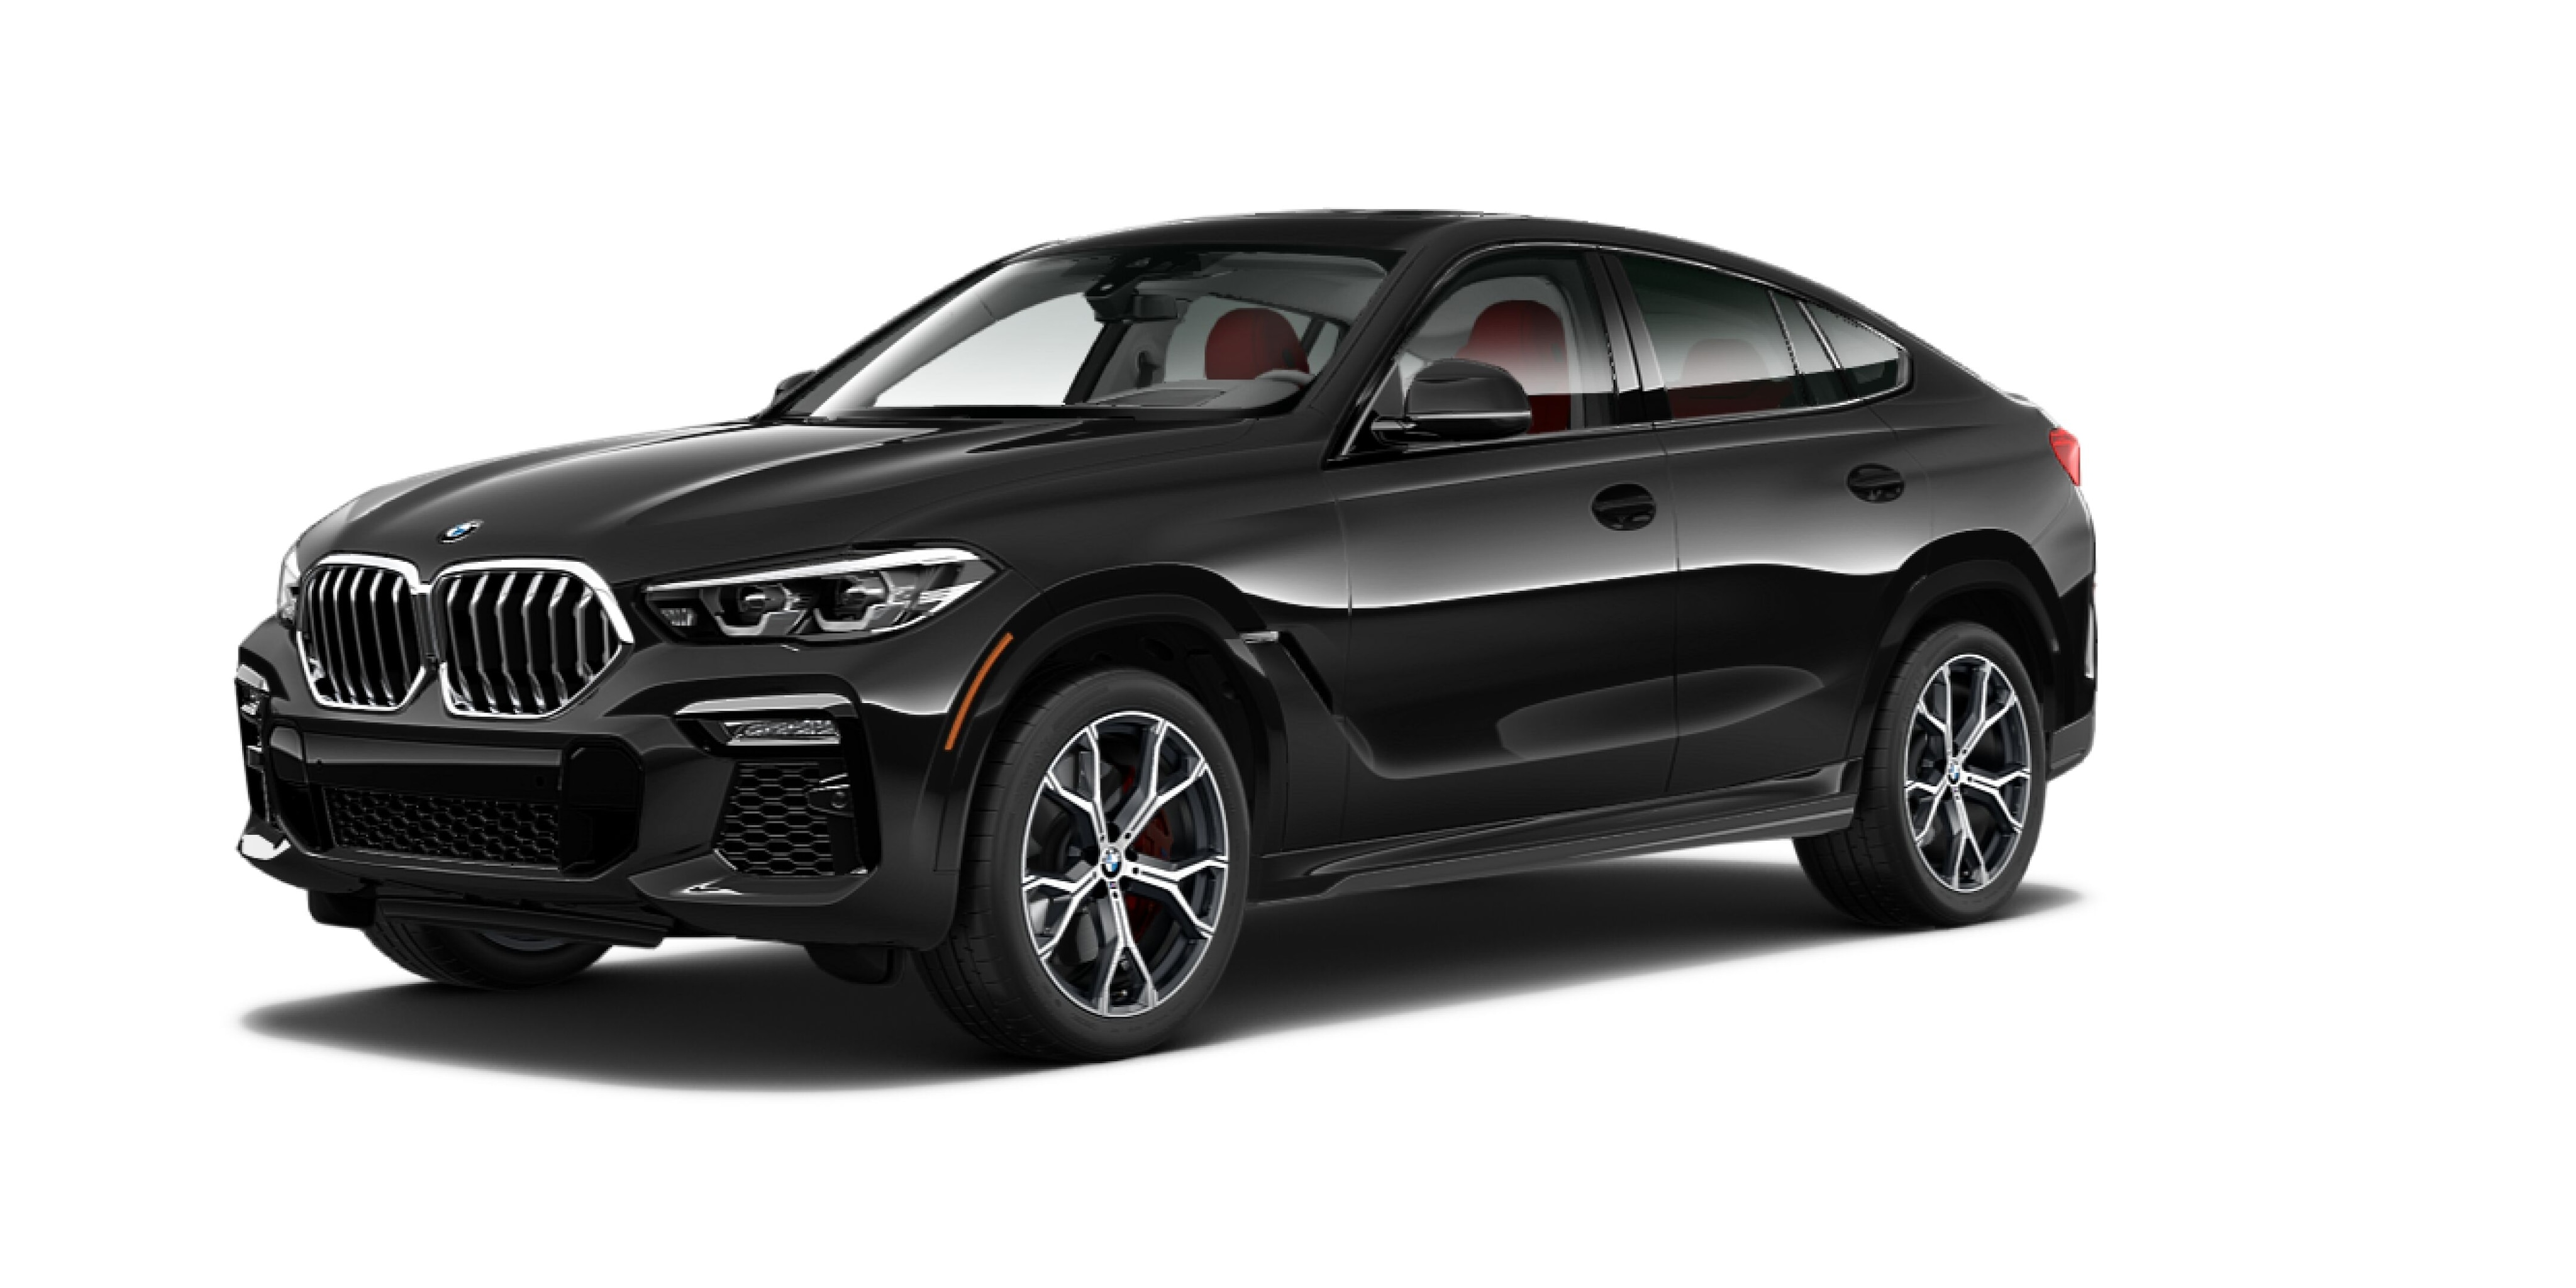 2021 bmw x6 sdrive40i suv for sale in fort lauderdale fl